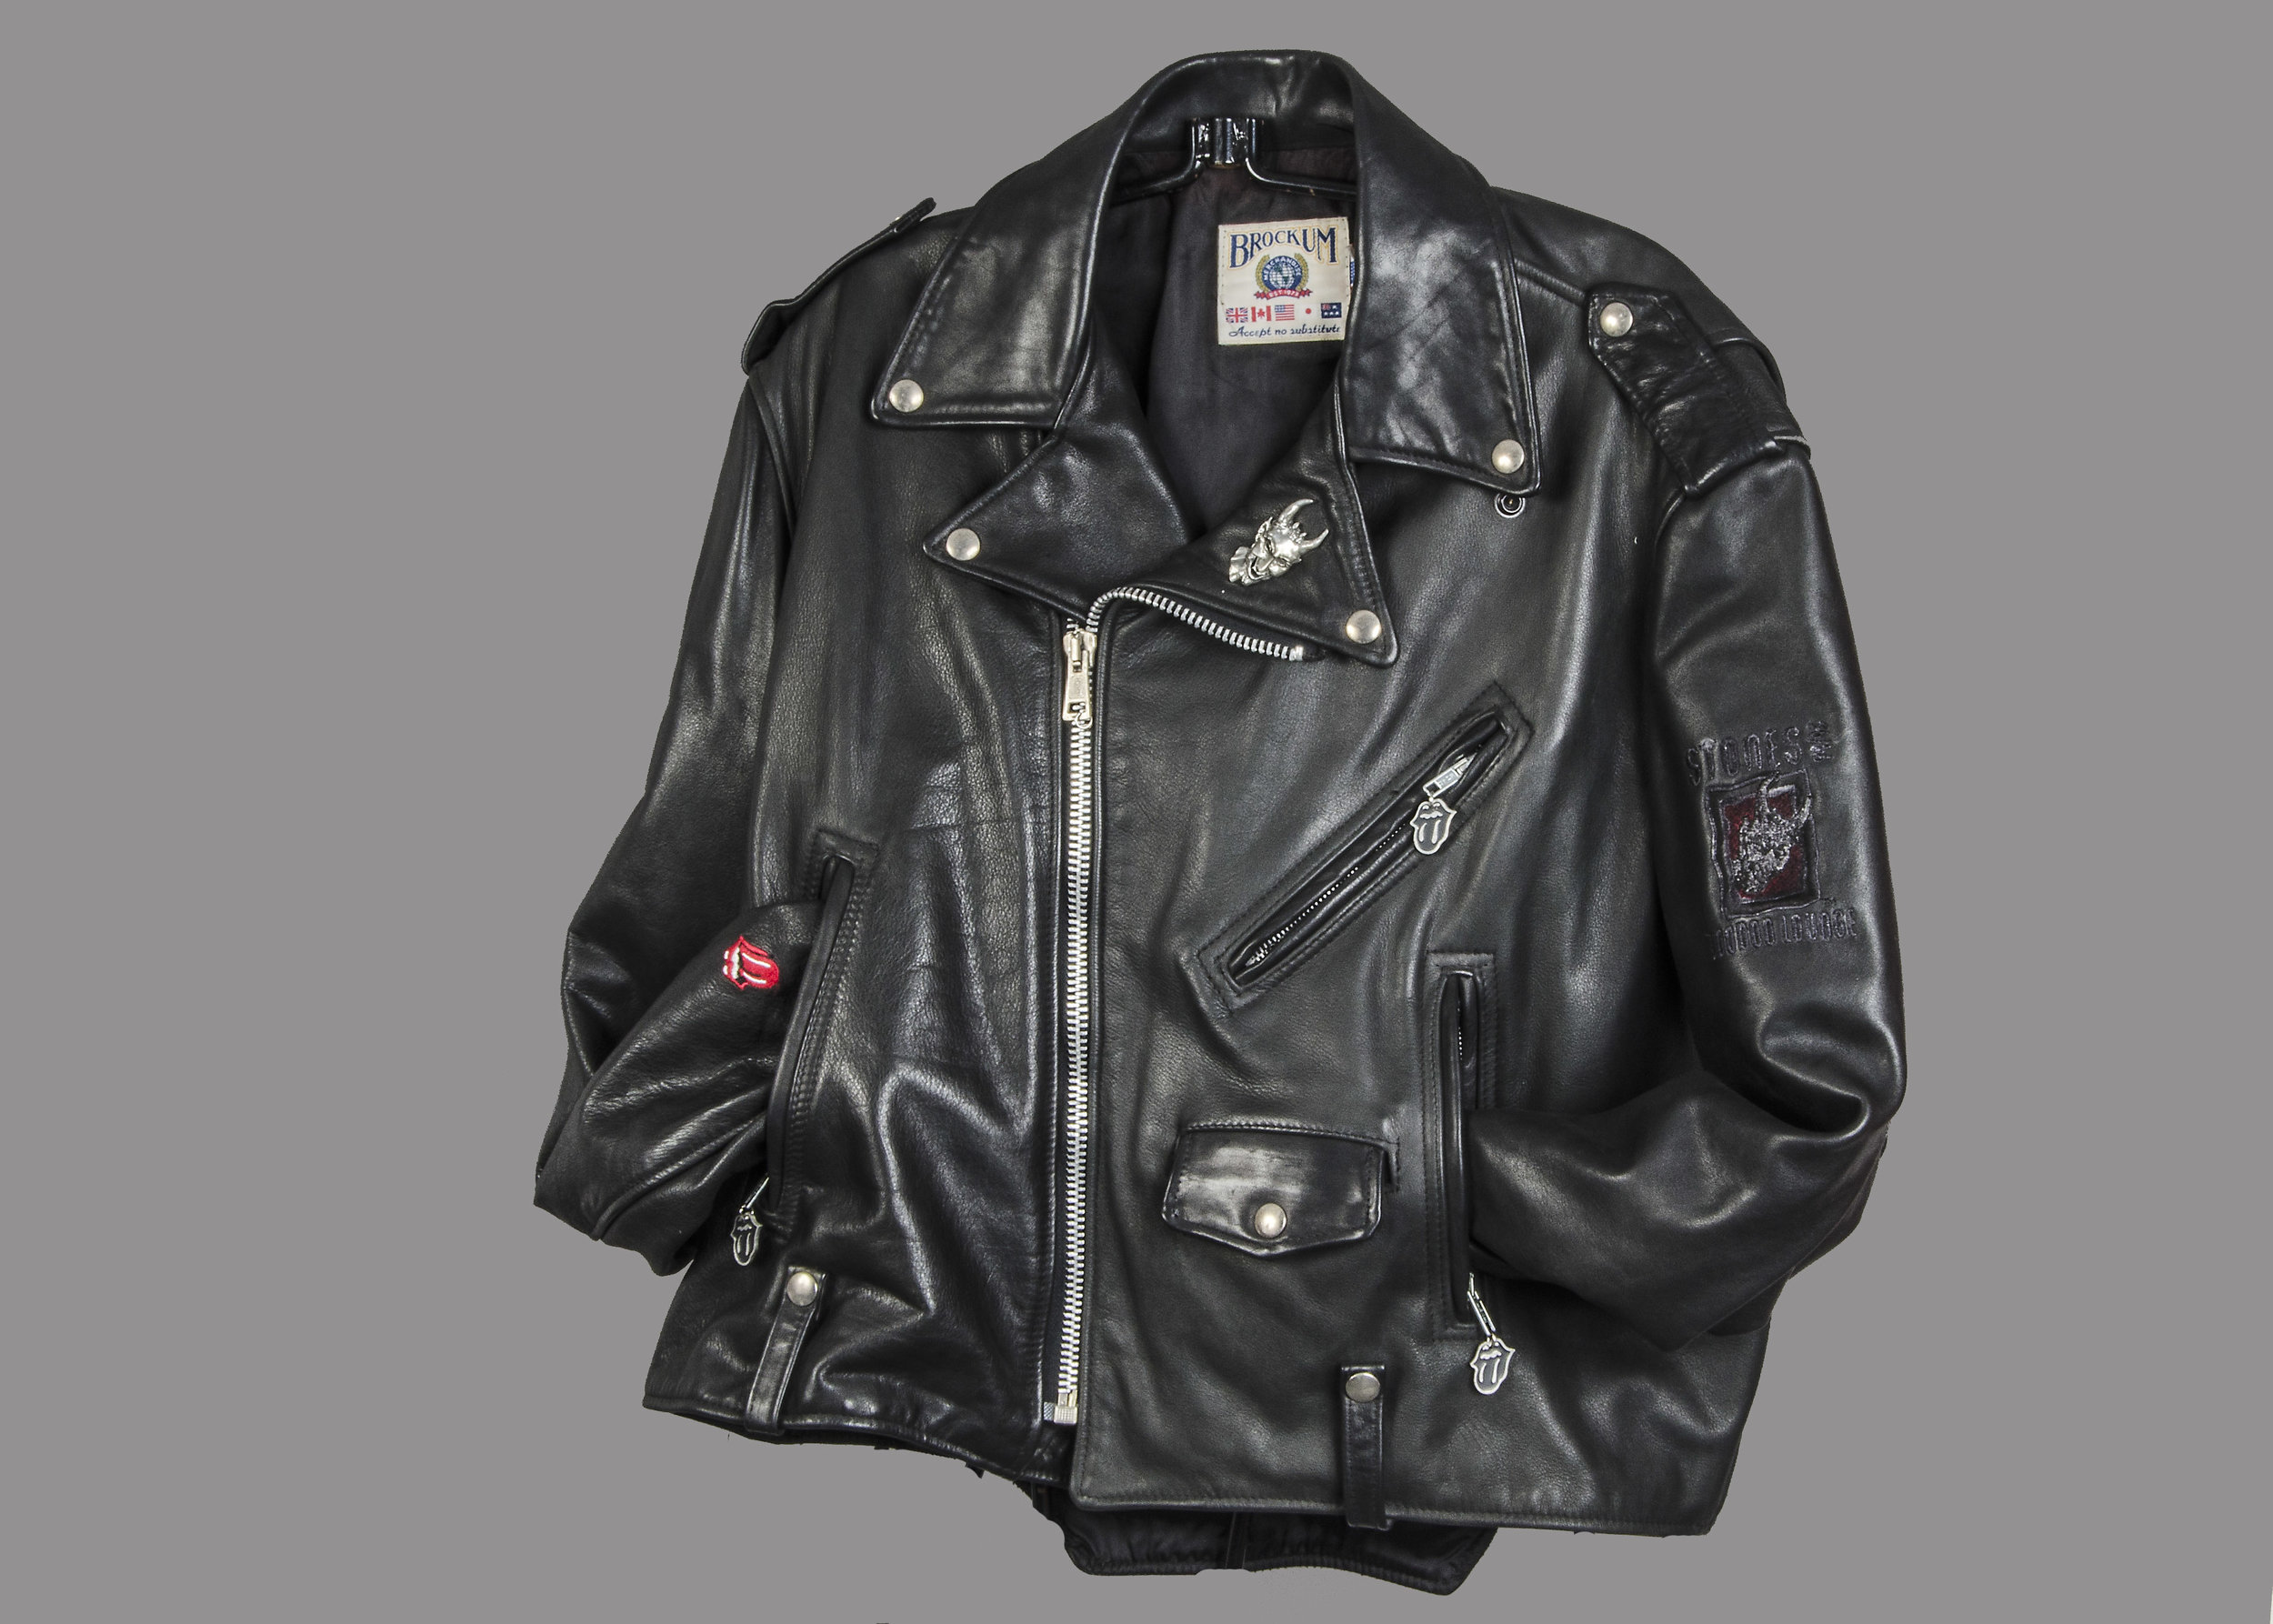 Vintage Rolling Stones Motorcycle Leather Jacket